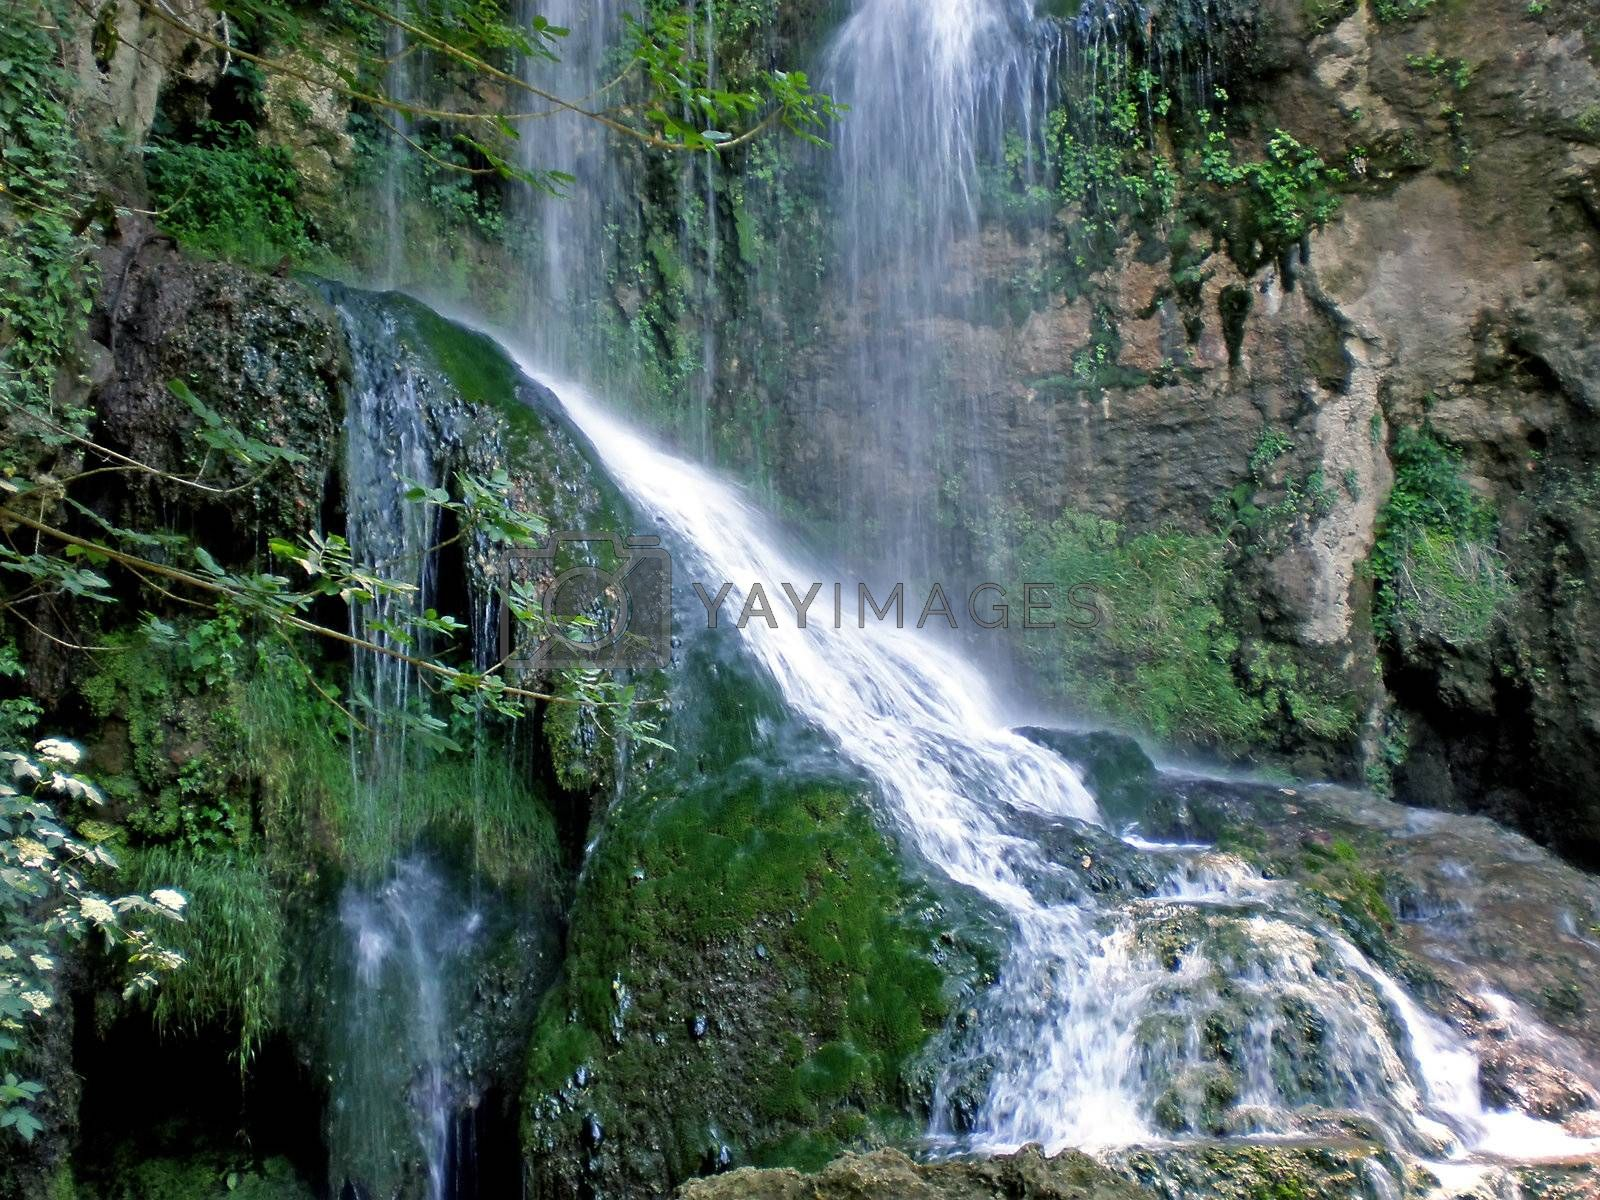 Royalty free image of waterfall by Dessie_bg